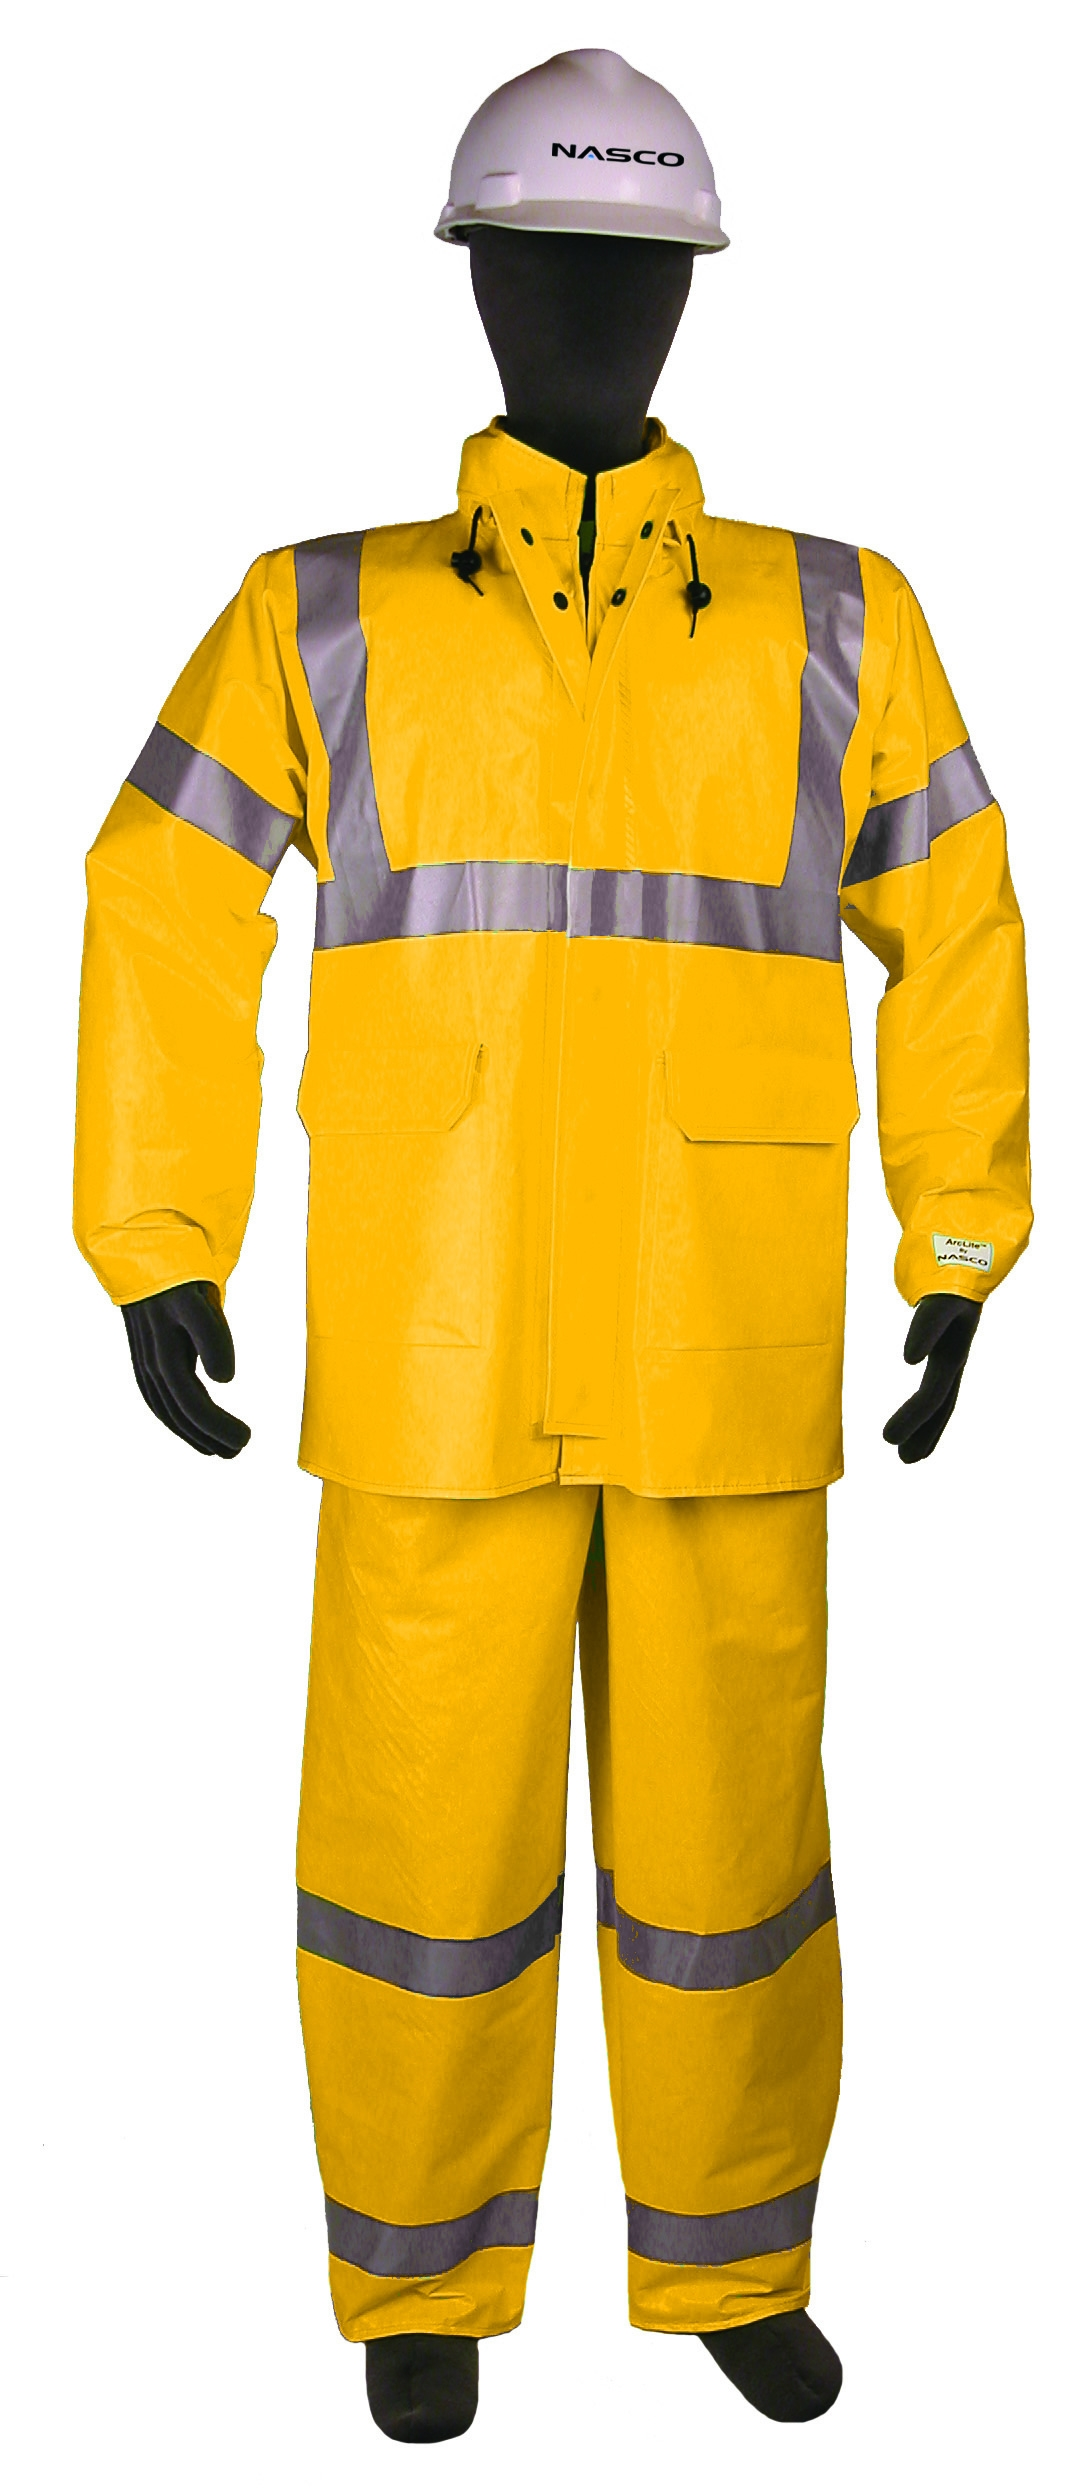 Arclite 1000 Series Full Suit Yellow